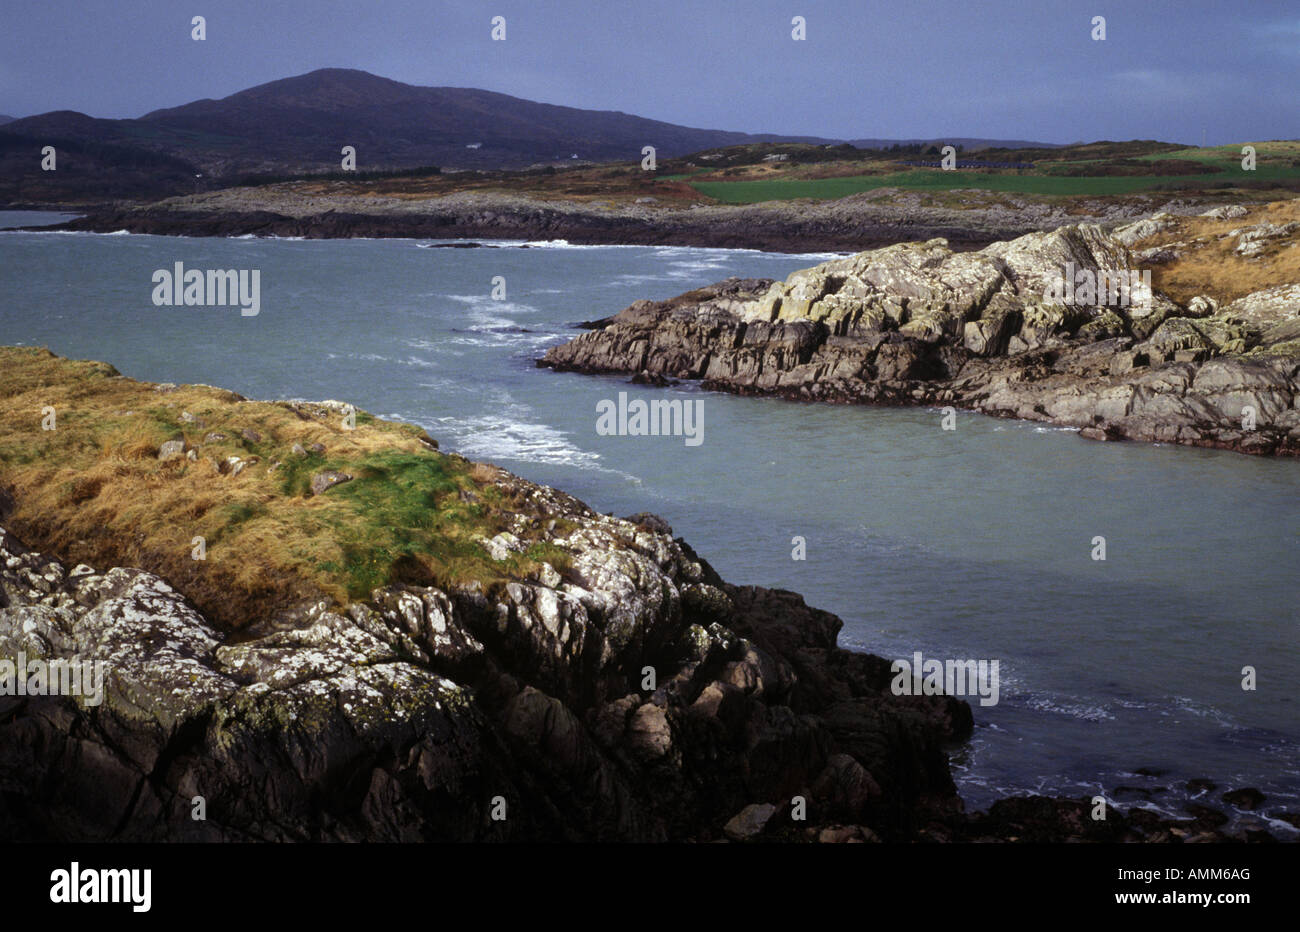 rocks near Toormoor, West Cork Ireland - Stock Image